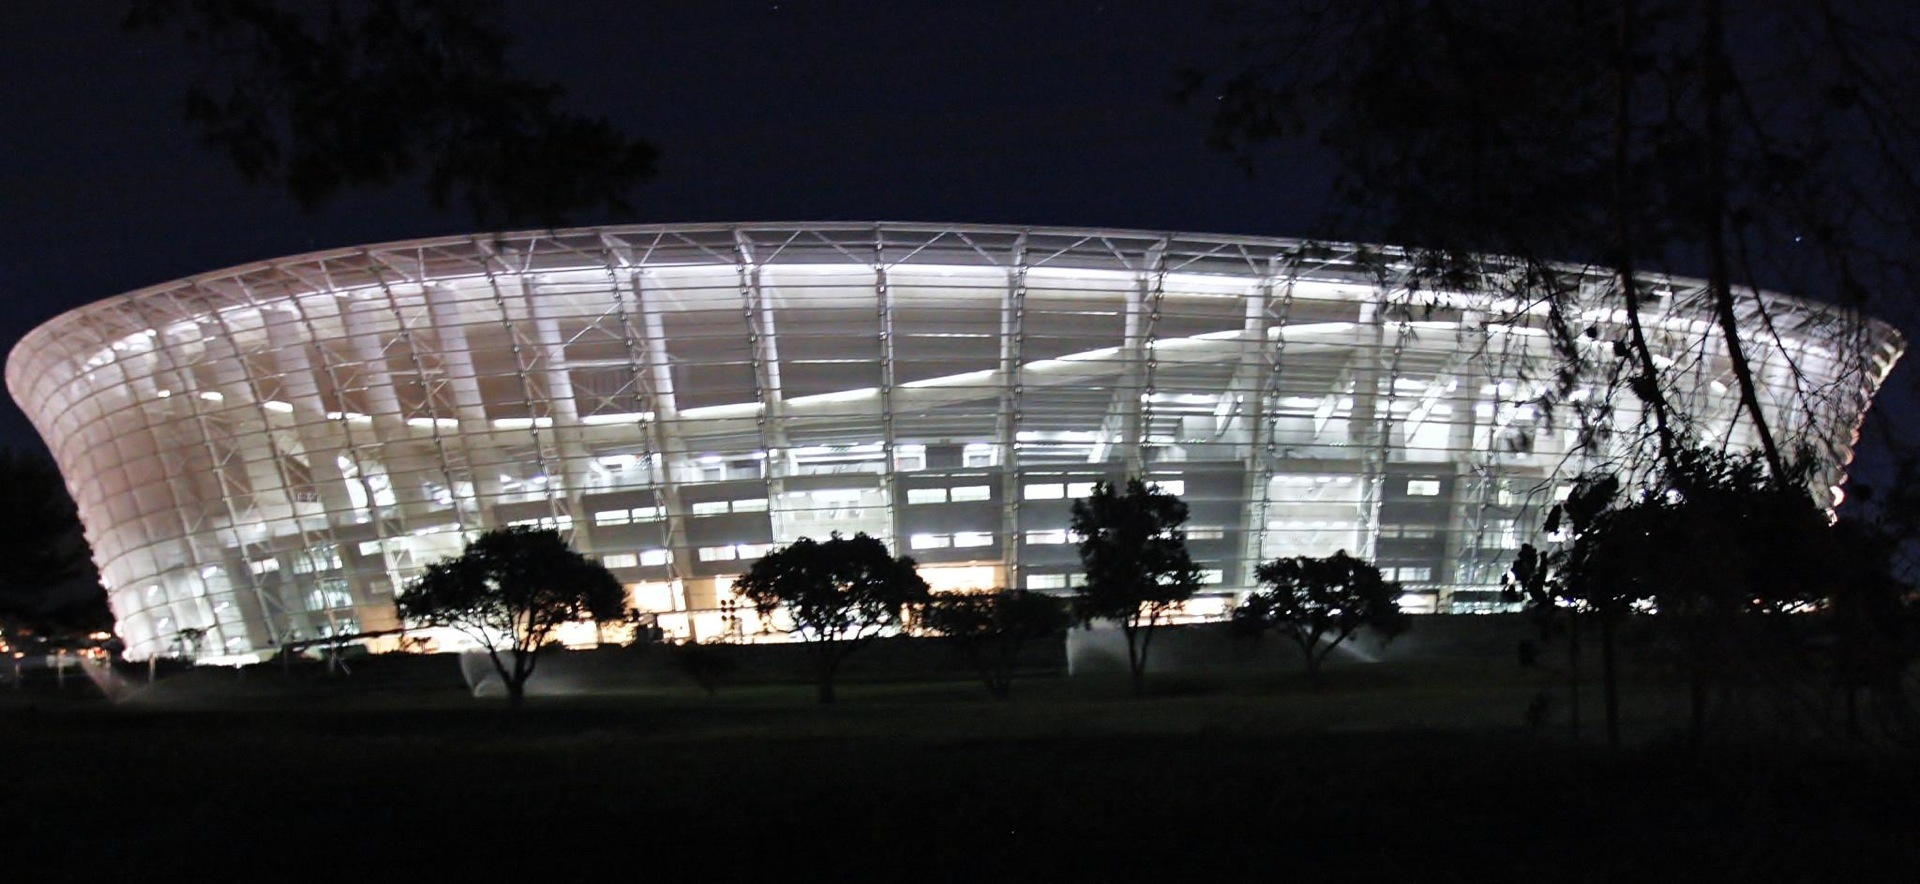 Night time view of the Cape Town Stadium, a framework of white light against a dark sky